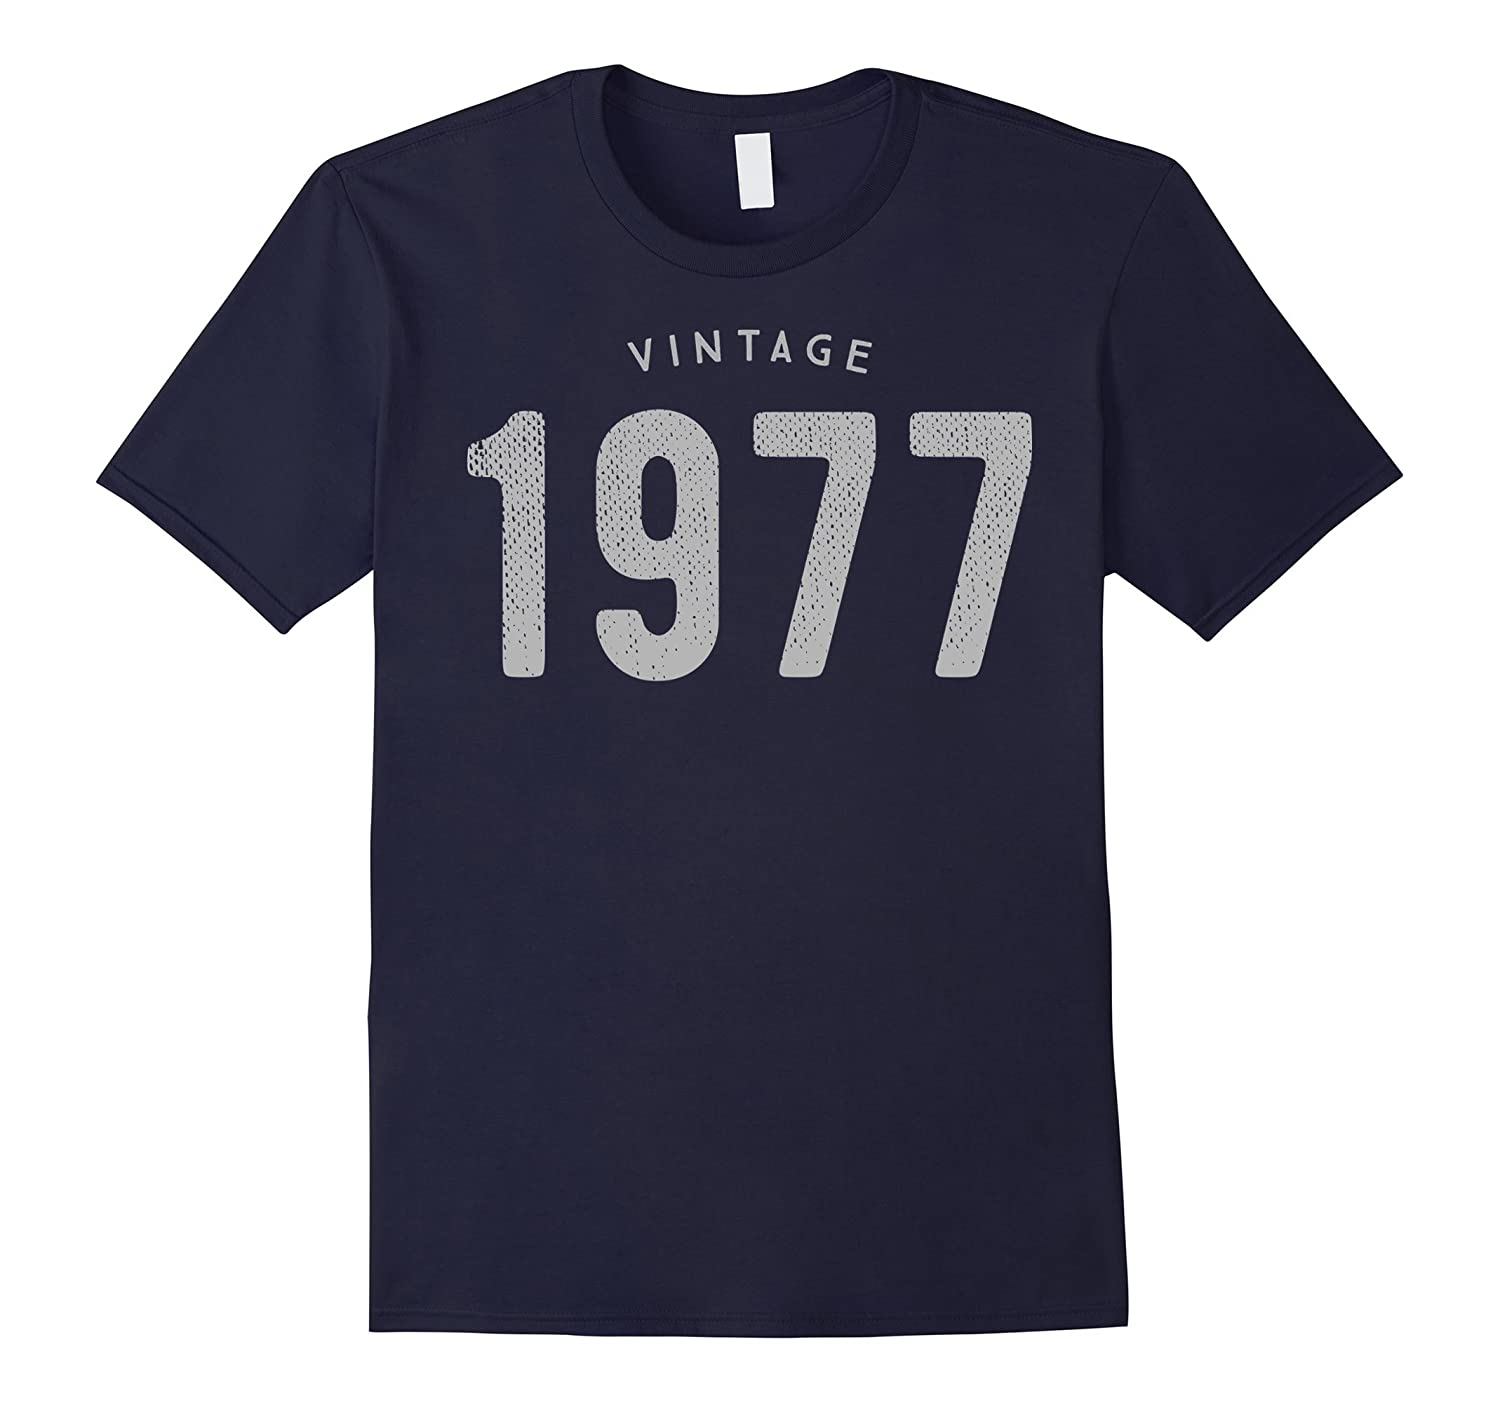 40th Birthday Gift - Vintage 1977 T-Shirt for Men  Women-CD